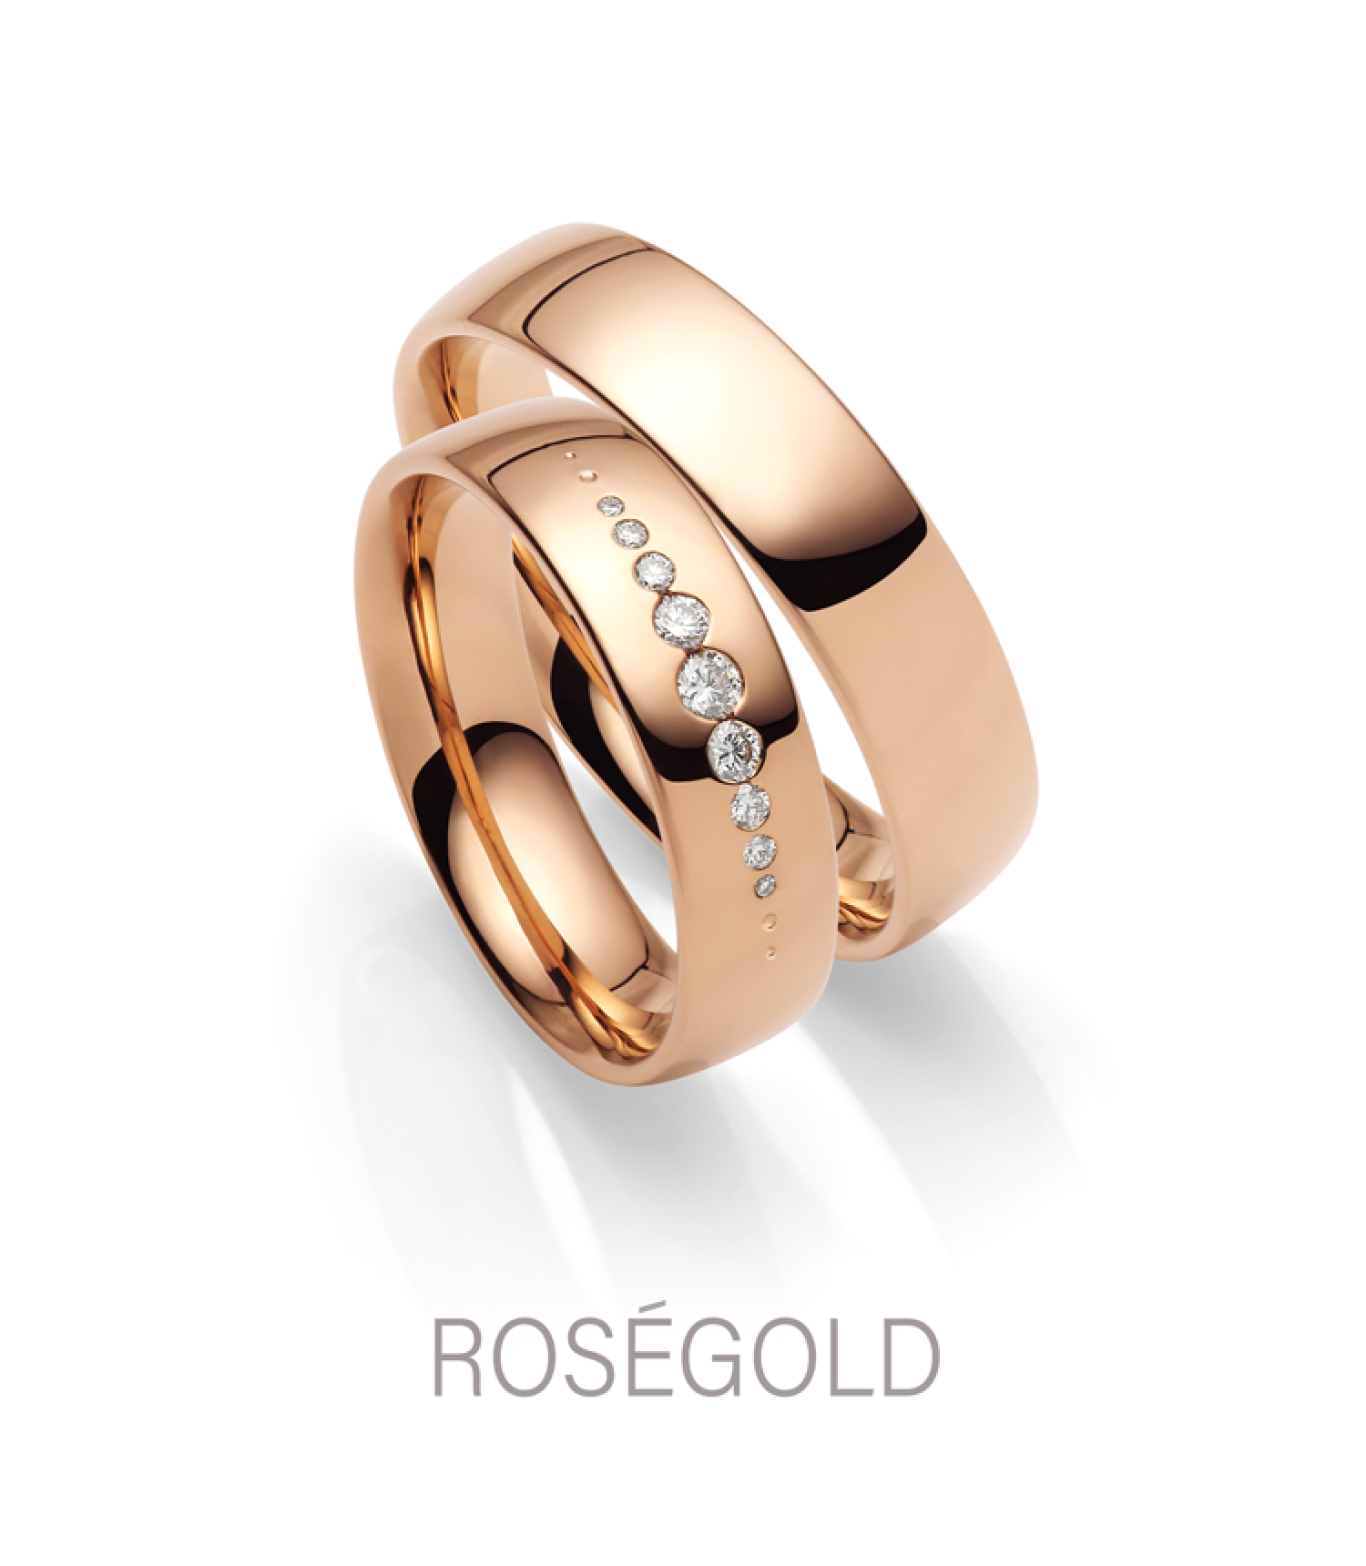 1_Rosegold_New